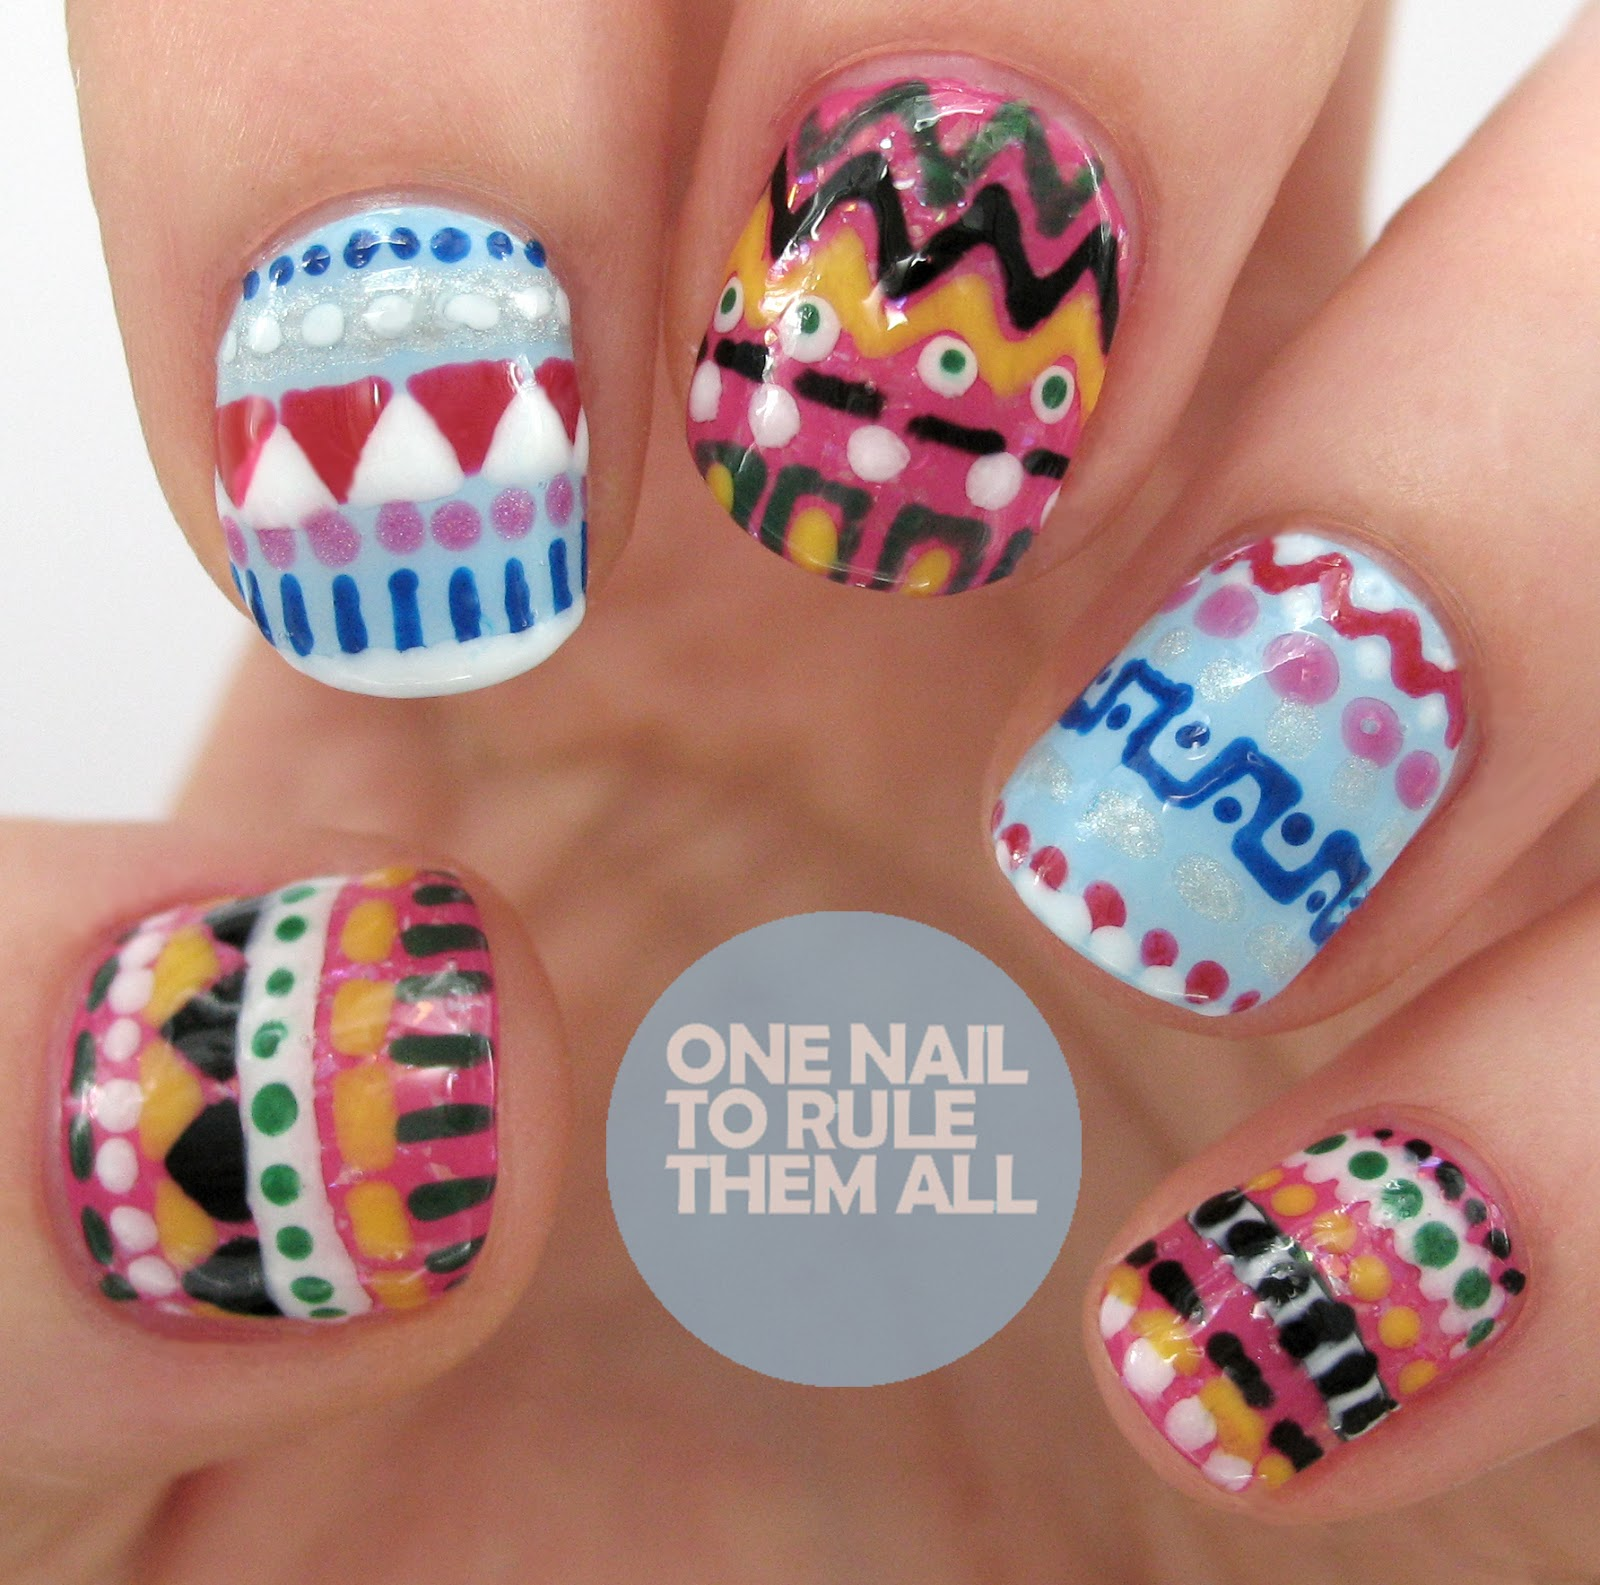 one nail to rule them all rio original nail art pens review. Black Bedroom Furniture Sets. Home Design Ideas